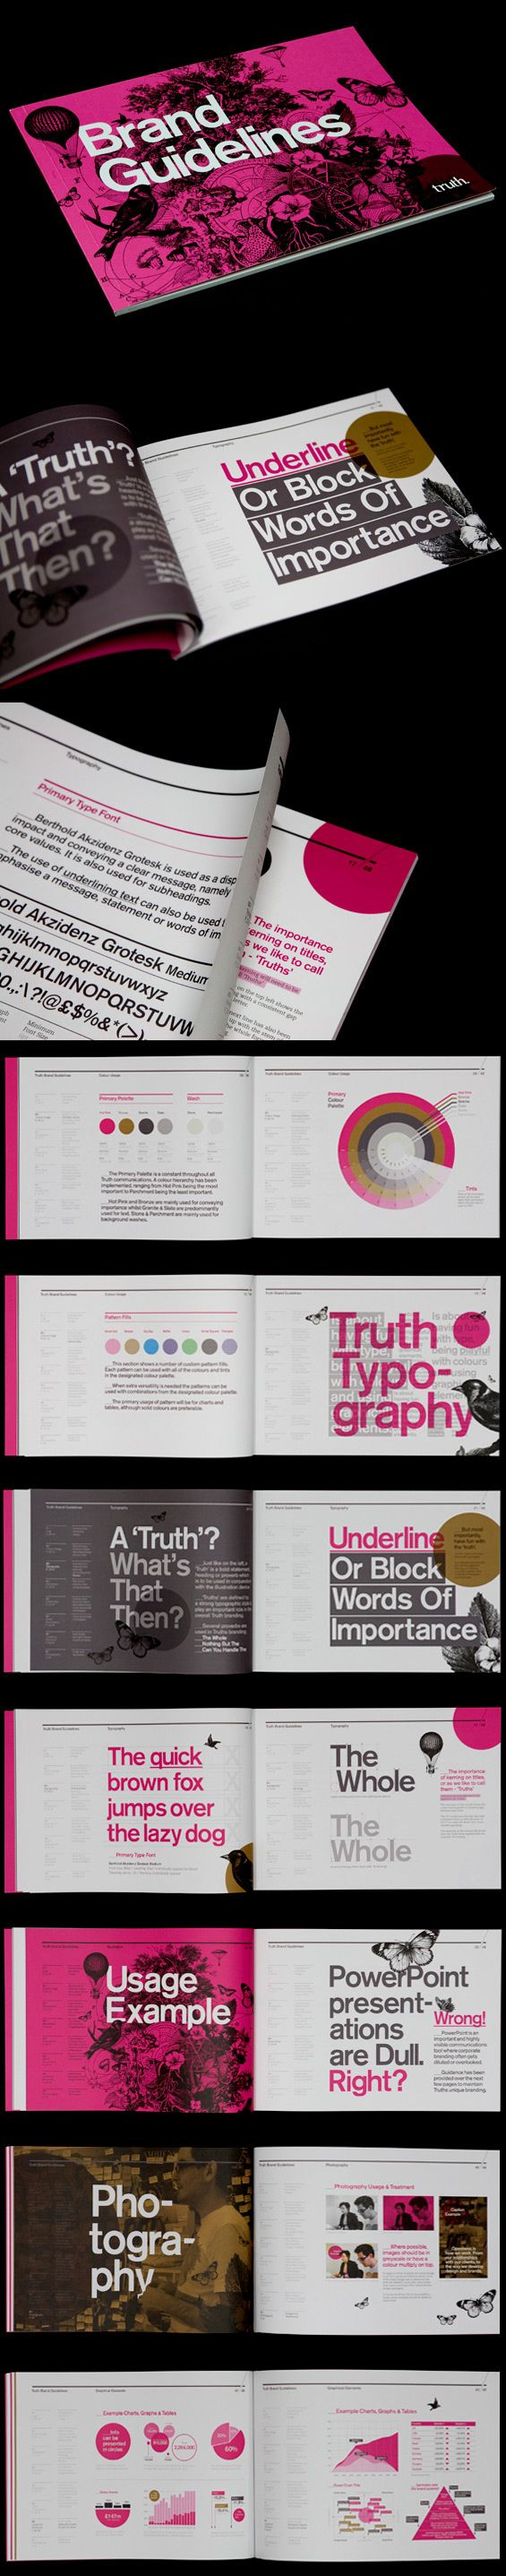 Truth Brand Guide by Mash Creative